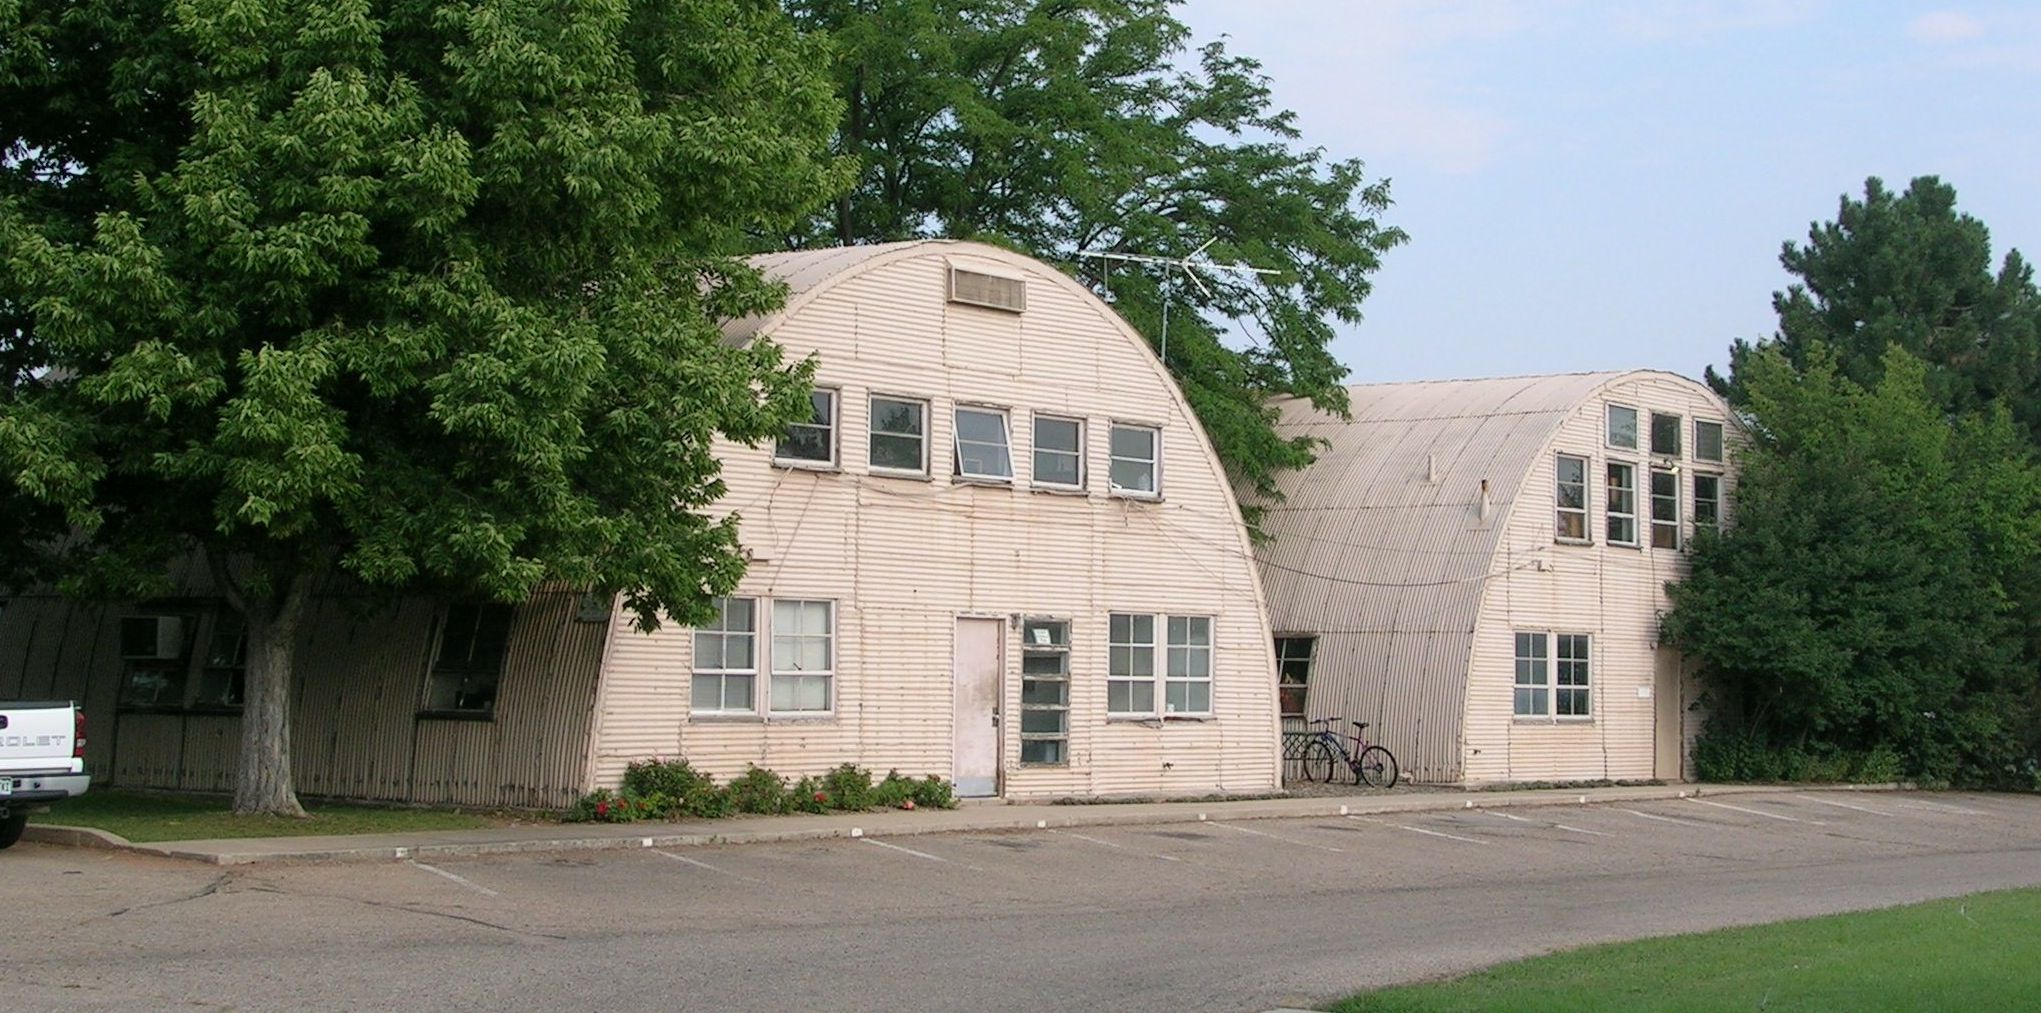 Military Surplus Quonset Huts For Sale >> Military Surplus Quonset Huts Used For Men S Dormintories